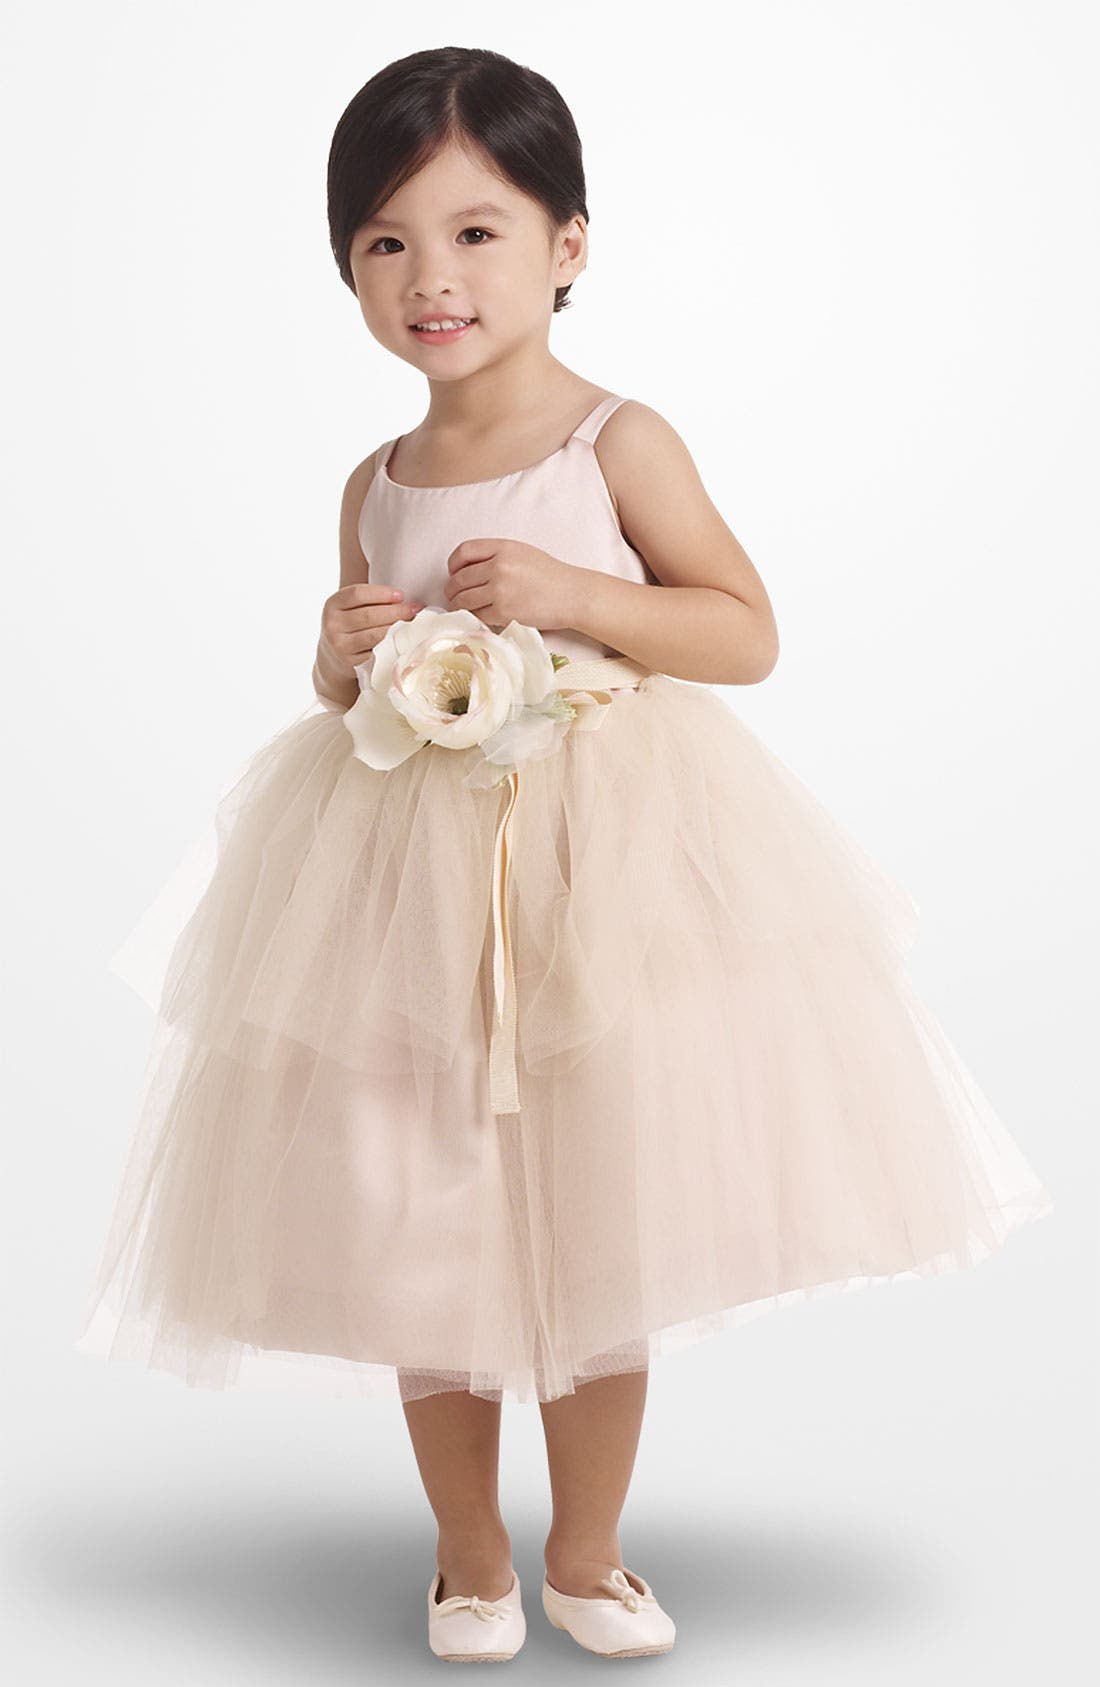 Alternate Image 1 Selected - Us Angels Tulle Ballerina Dress (Baby Girls, Toddler Girls, Little Girls & Big Girls)